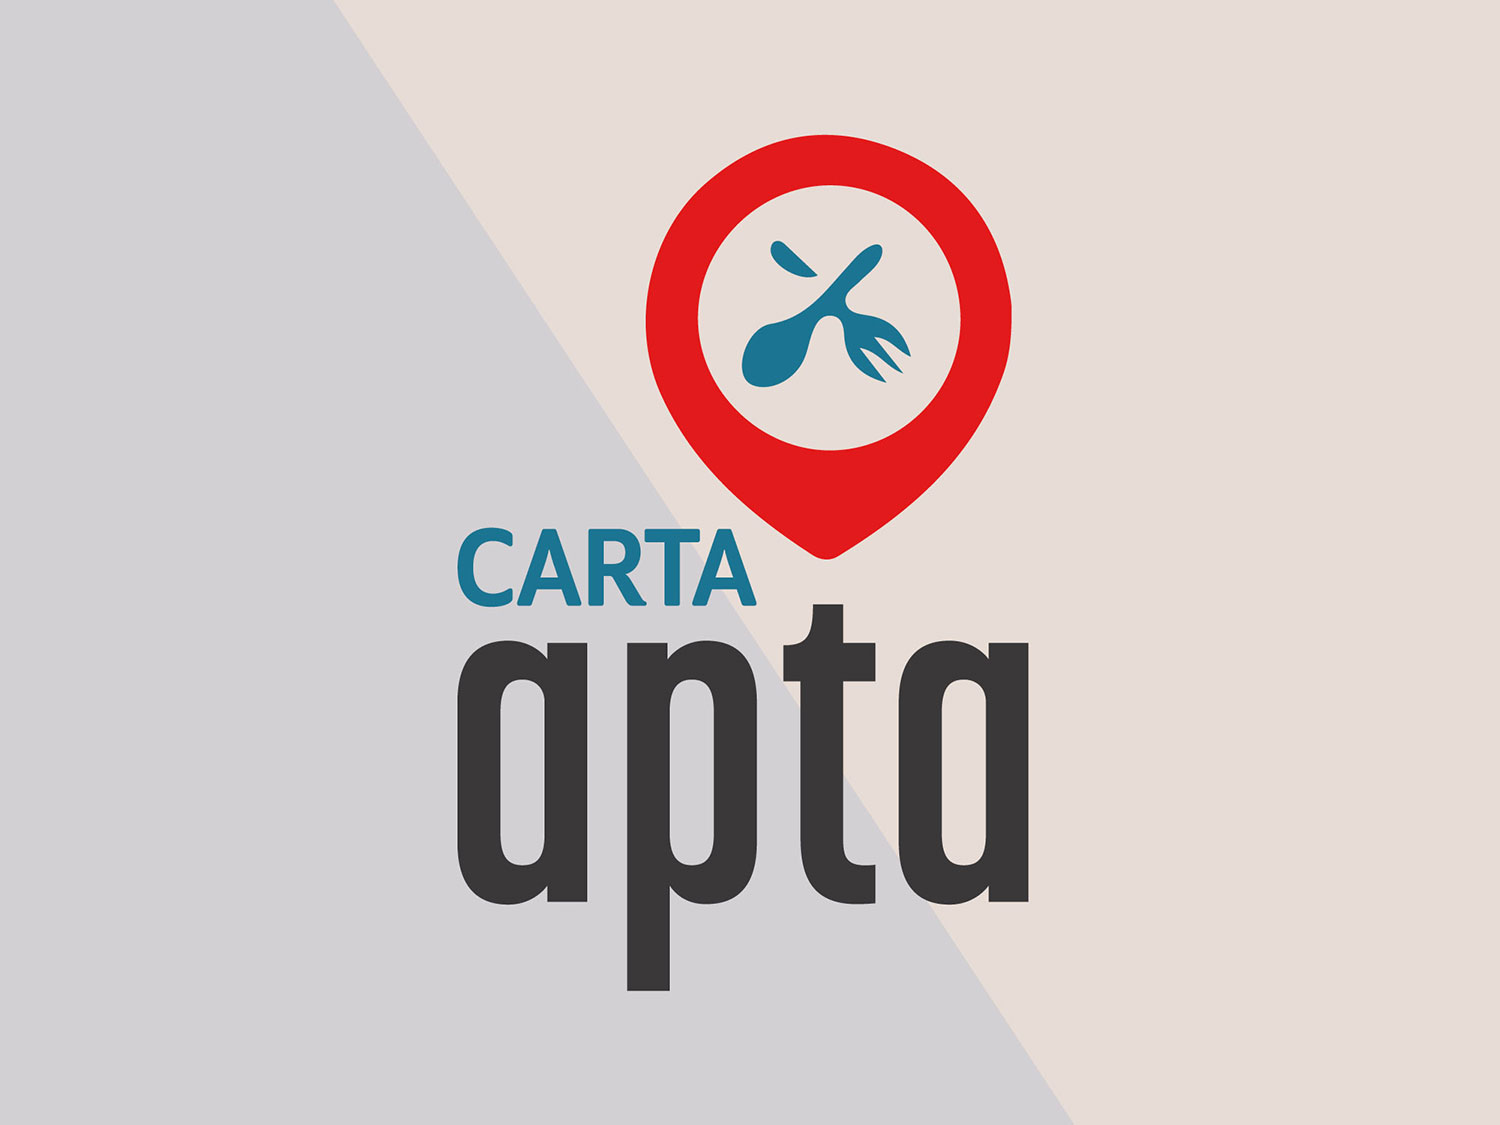 Imatge corporativa de Carta Apta